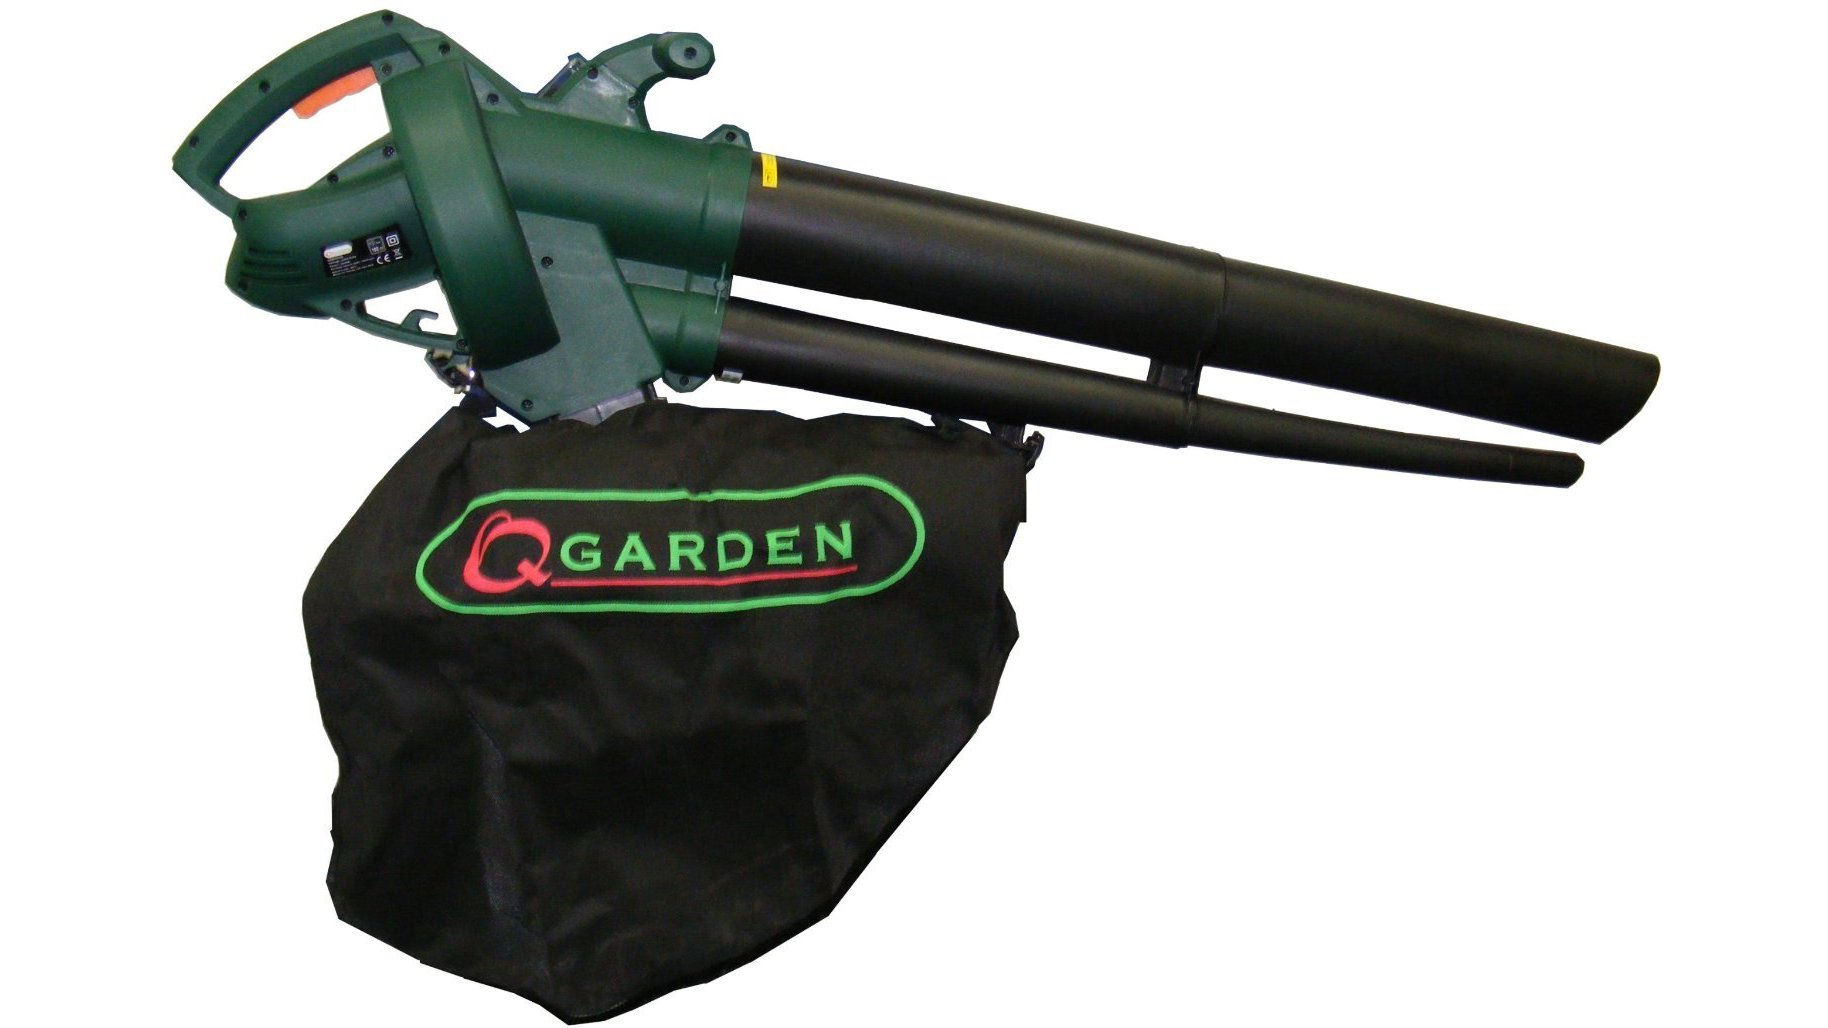 Best garden vacuum: Keep your garden clean with ease from